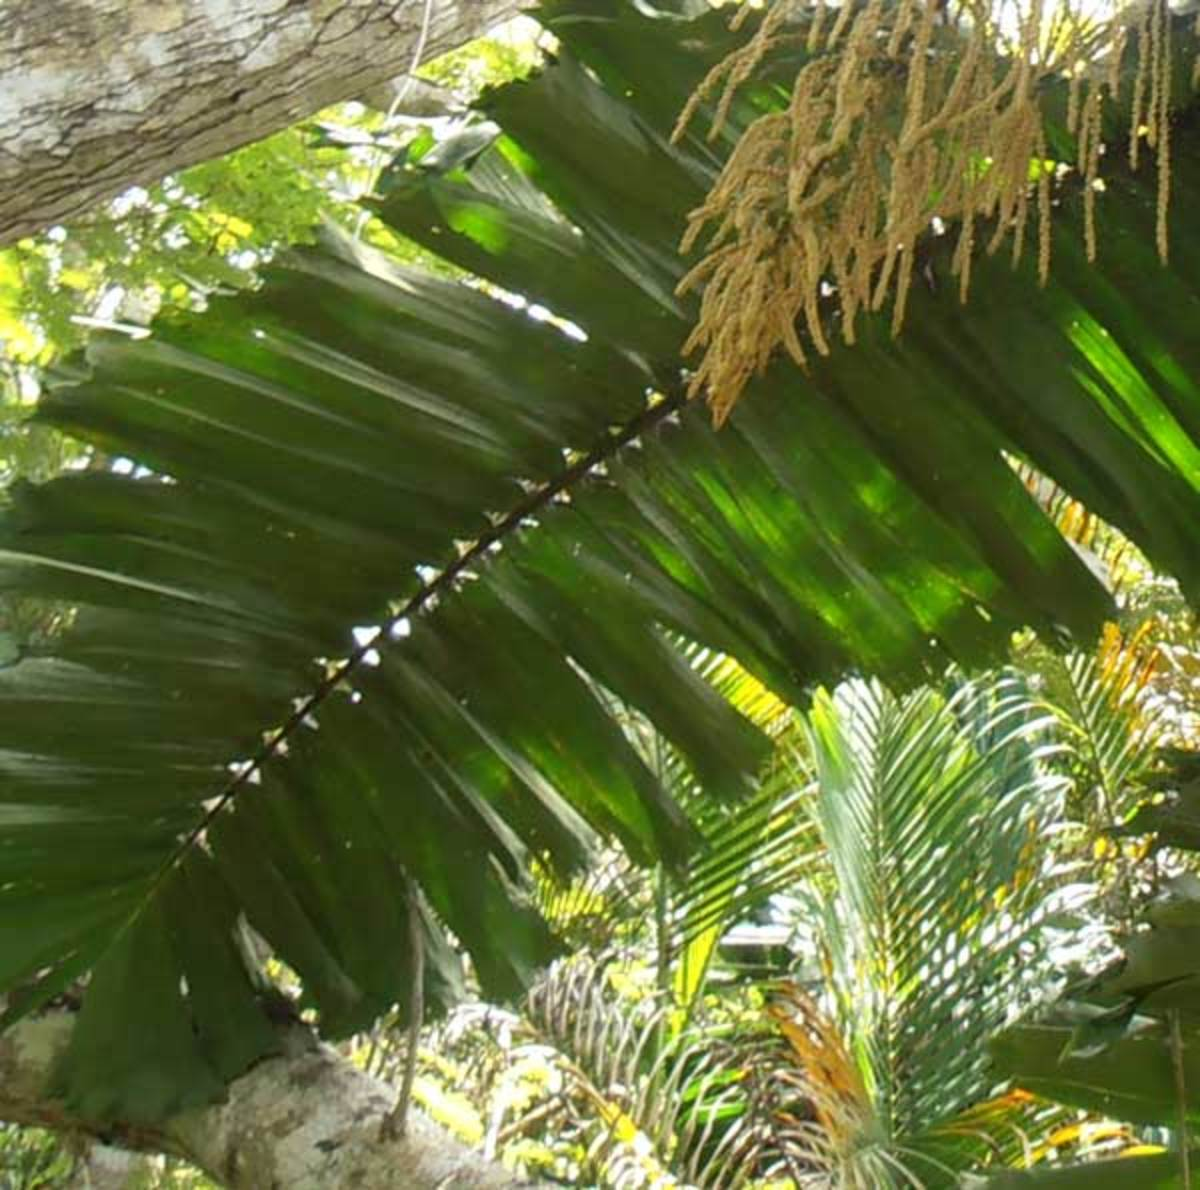 Alternate palm leaf. Leaves alternating along a palm frond. They can be thick (foreground) or delicate (behind).